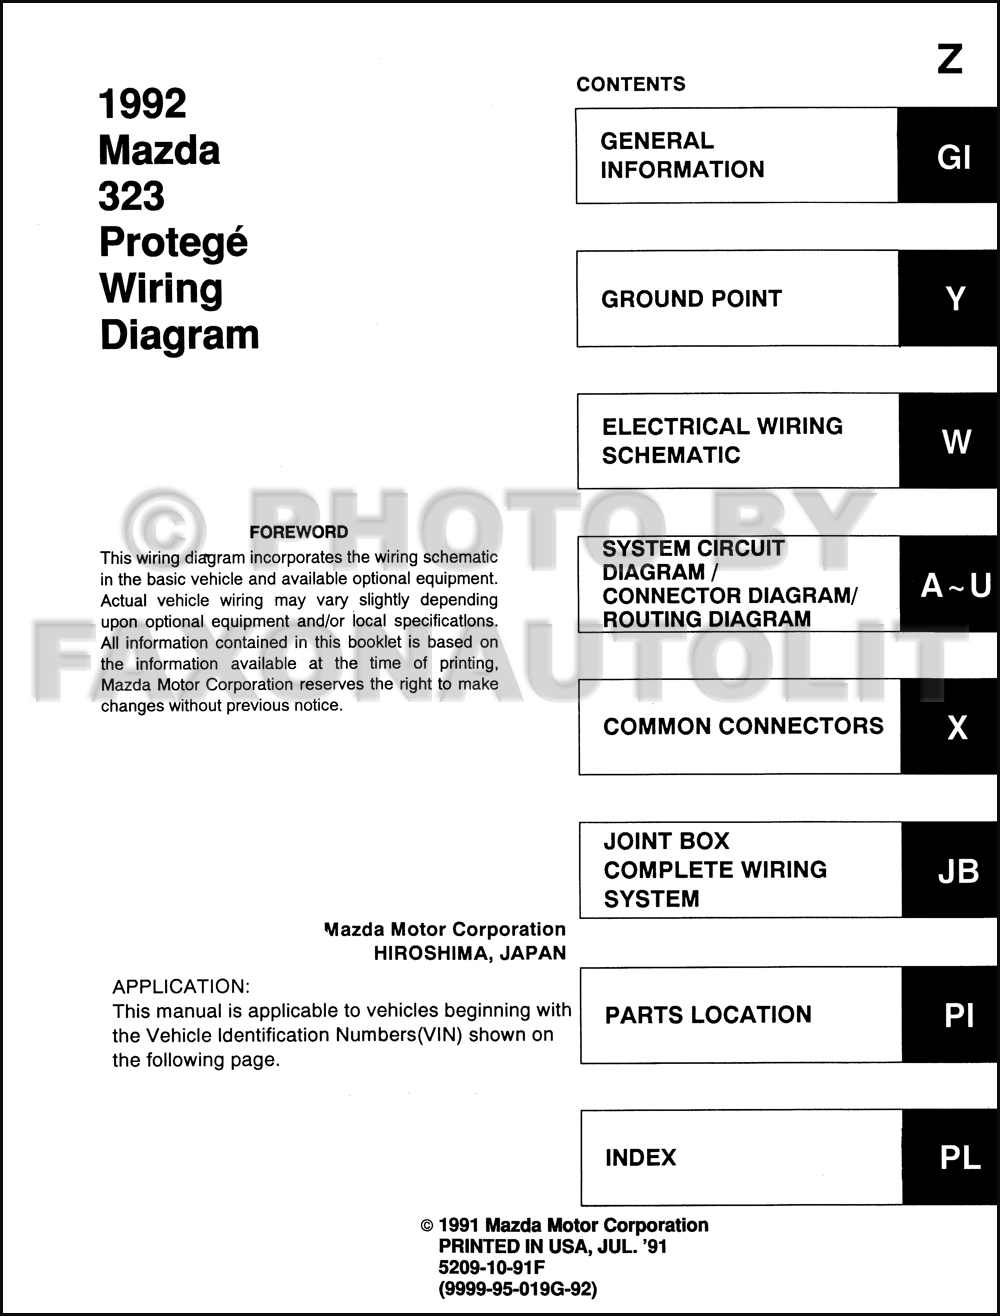 1992 Mazda 323 And Protege Wiring Diagram Manual Original J B Click On Thumbnail To Zoom